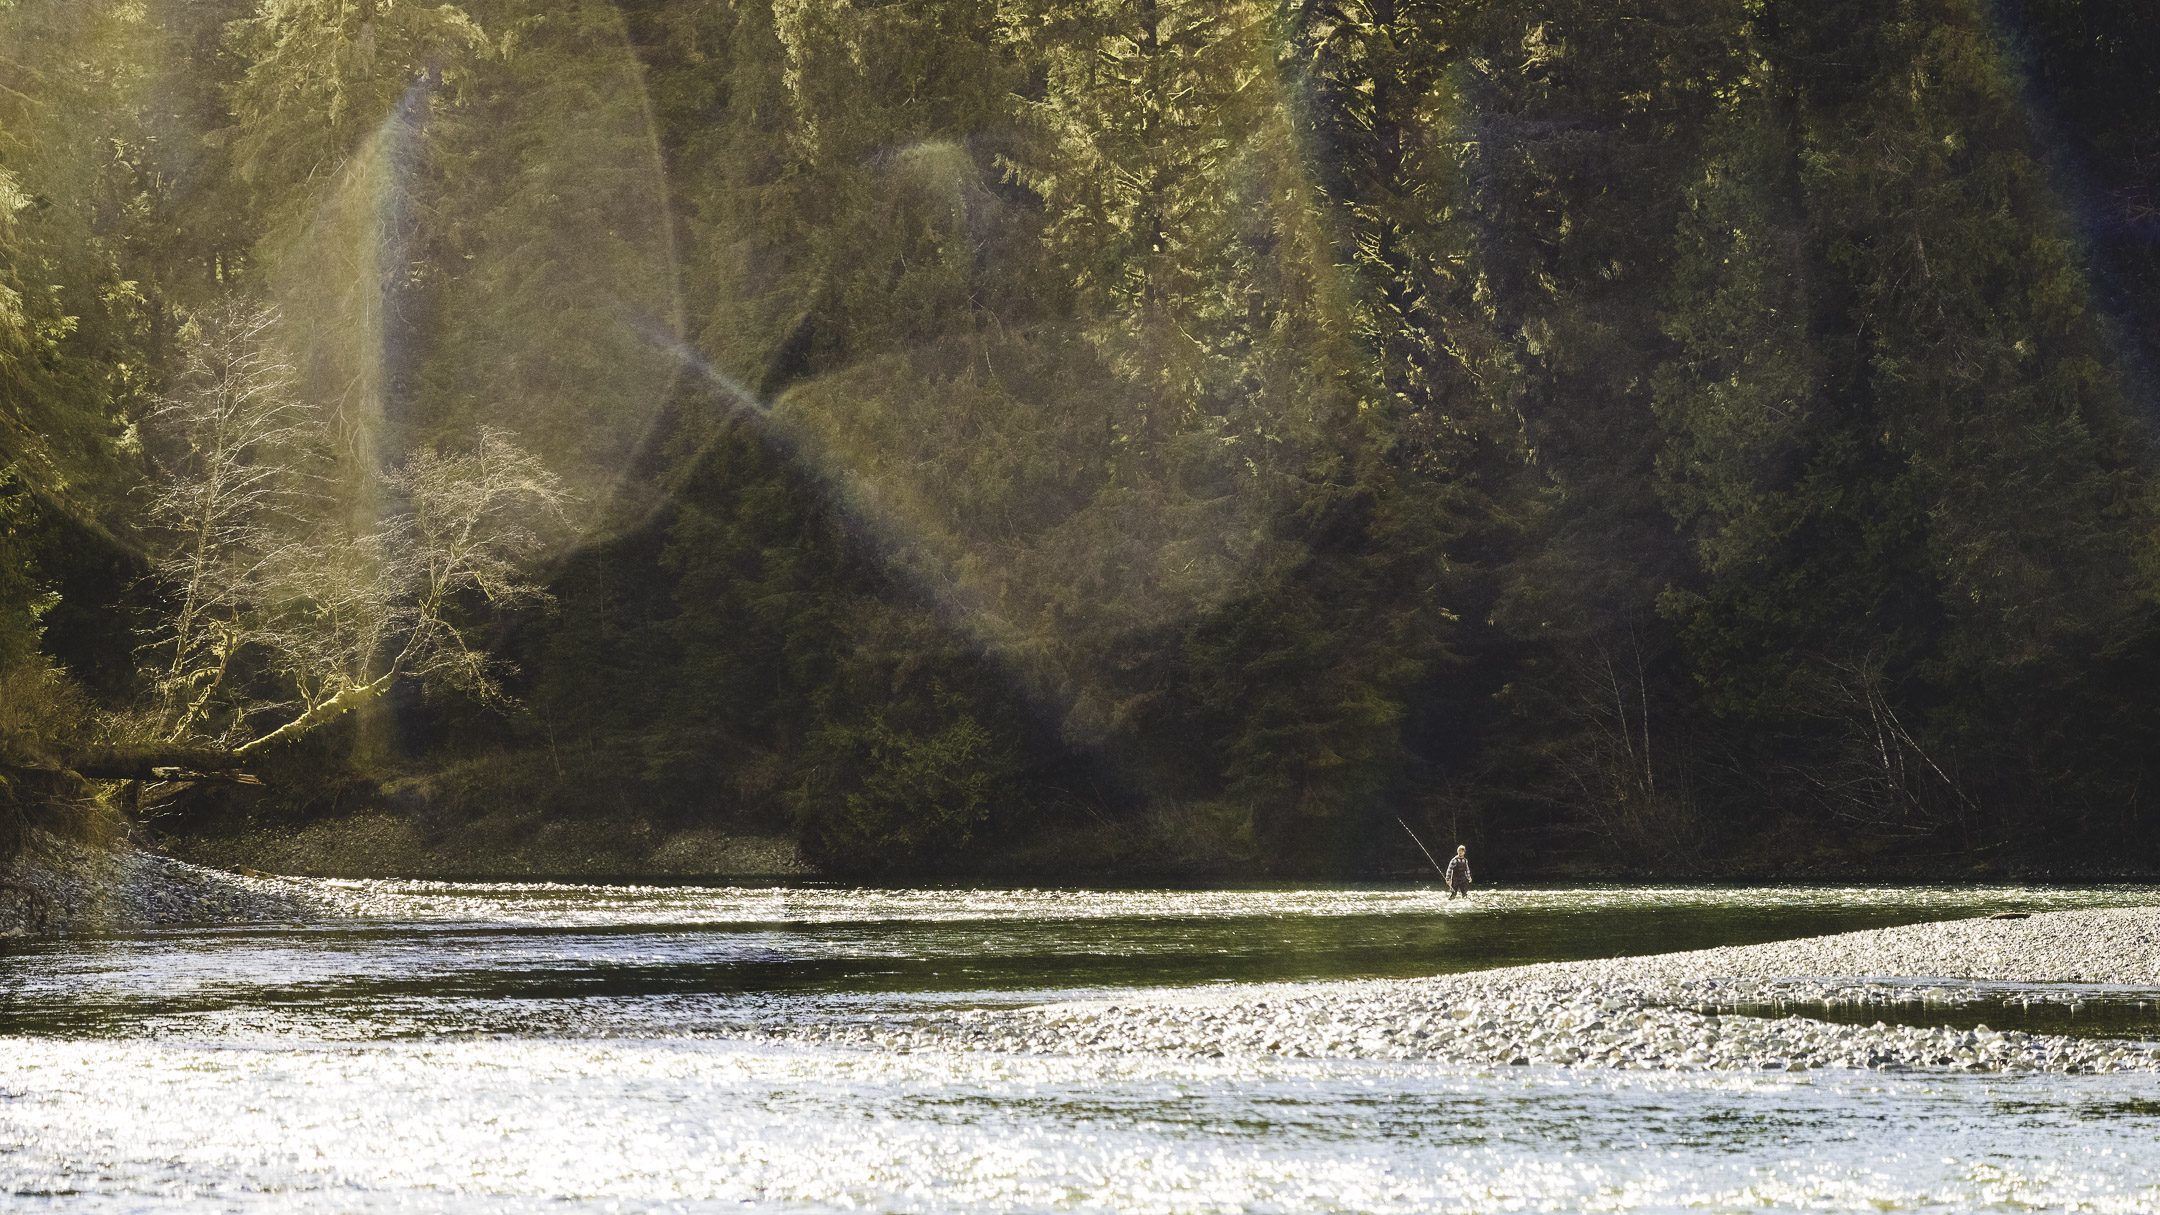 Fisherman walking in sunlight on the Gordon River in Port Renfrew, BC, Canada.